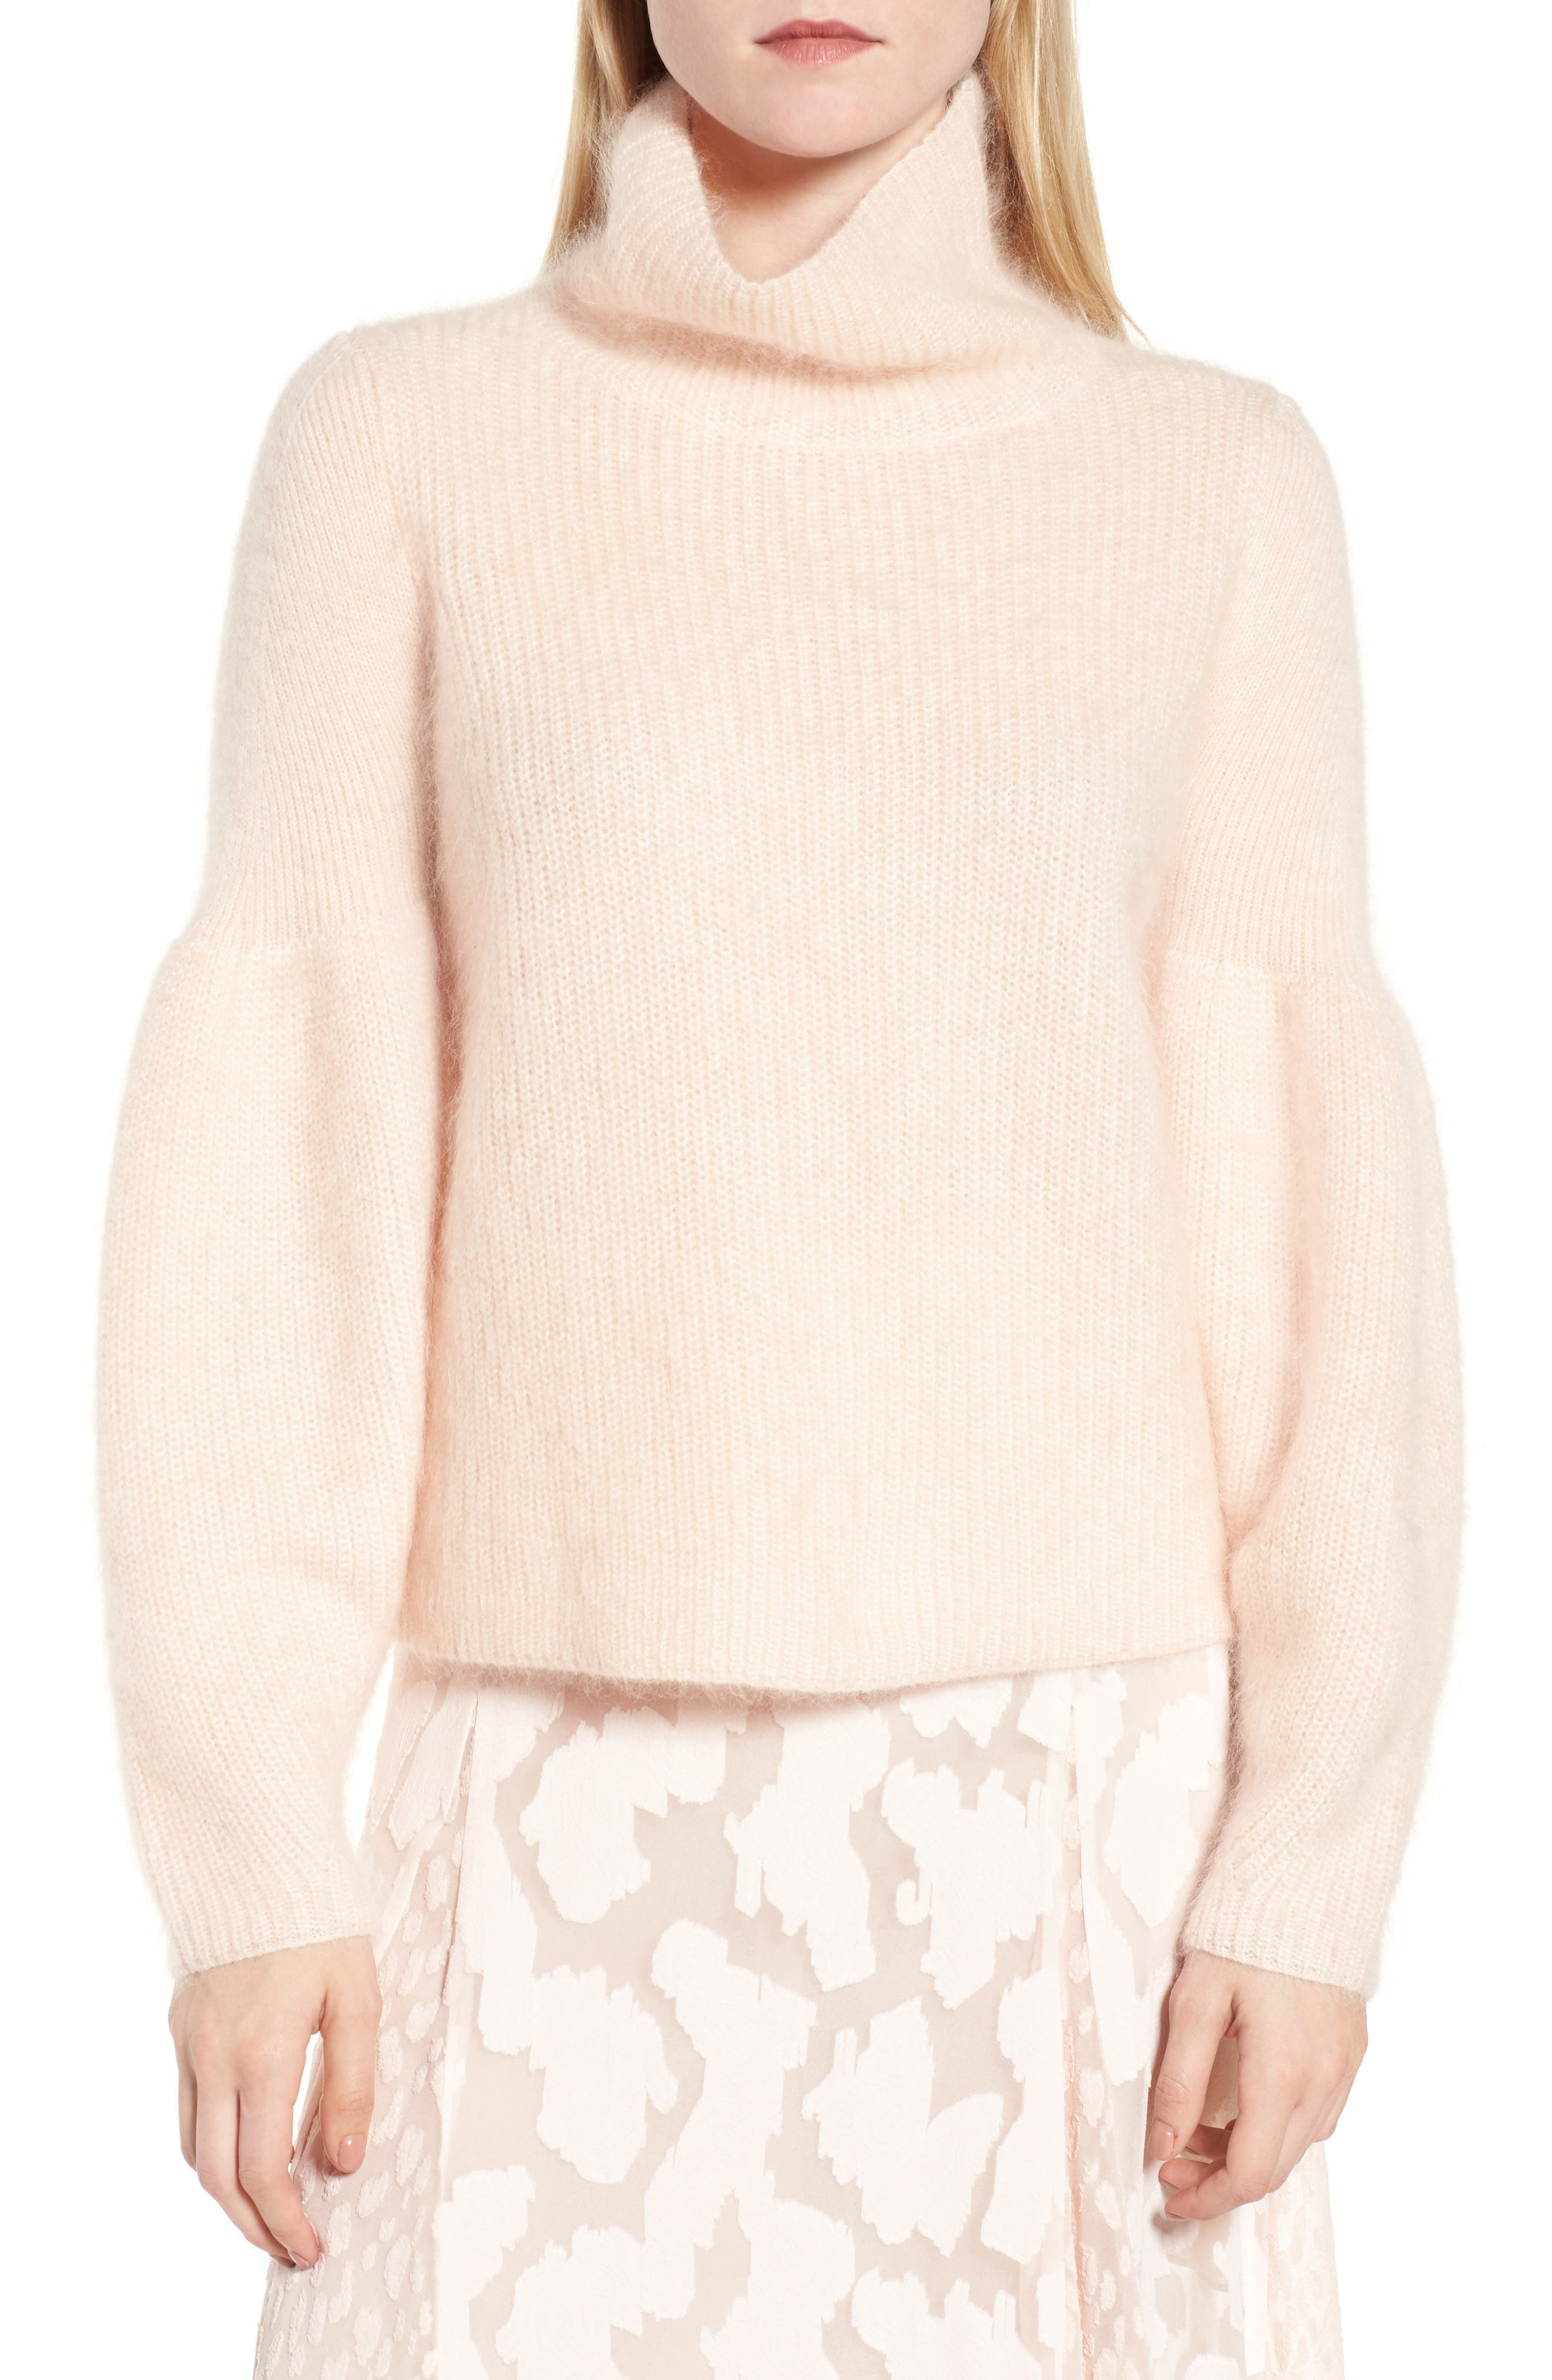 Poet Sleeve Sweater,                             Main thumbnail 1, color,                             680